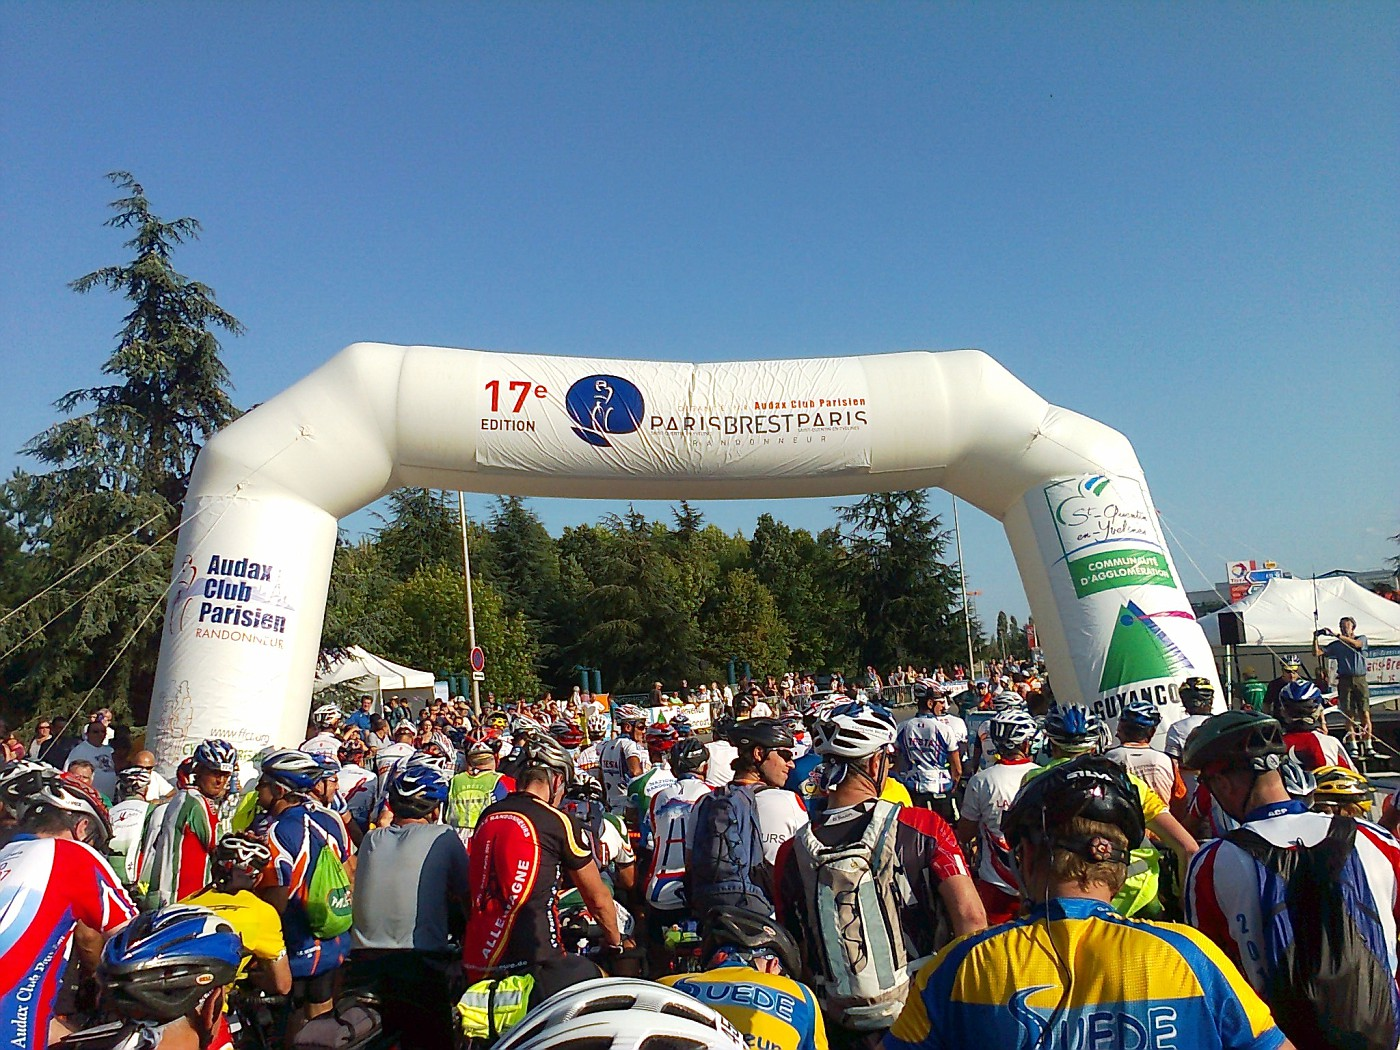 Waiting for the start